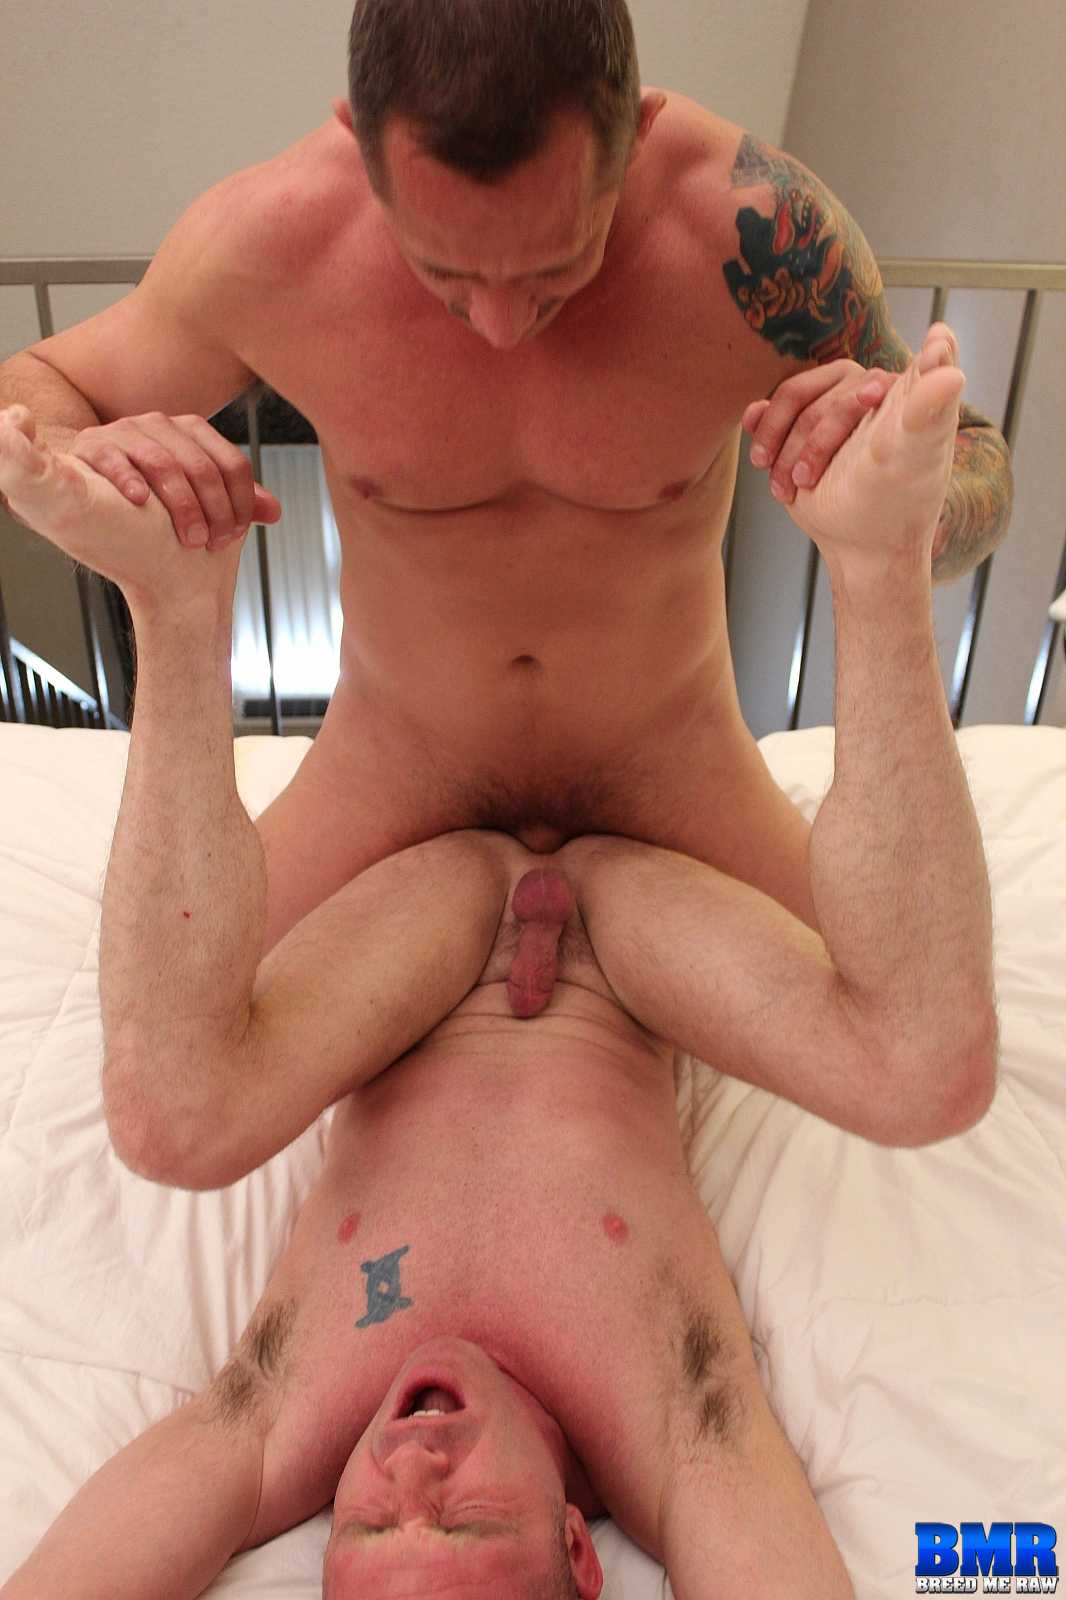 Breed-Me-Raw-Patrick-O-Connor-and-Kyle-Savage-Bareback-Daddy-Amateur-Gay-Porn-10 Tatted Muscle Daddy Breeds A Younger Stud Bareback